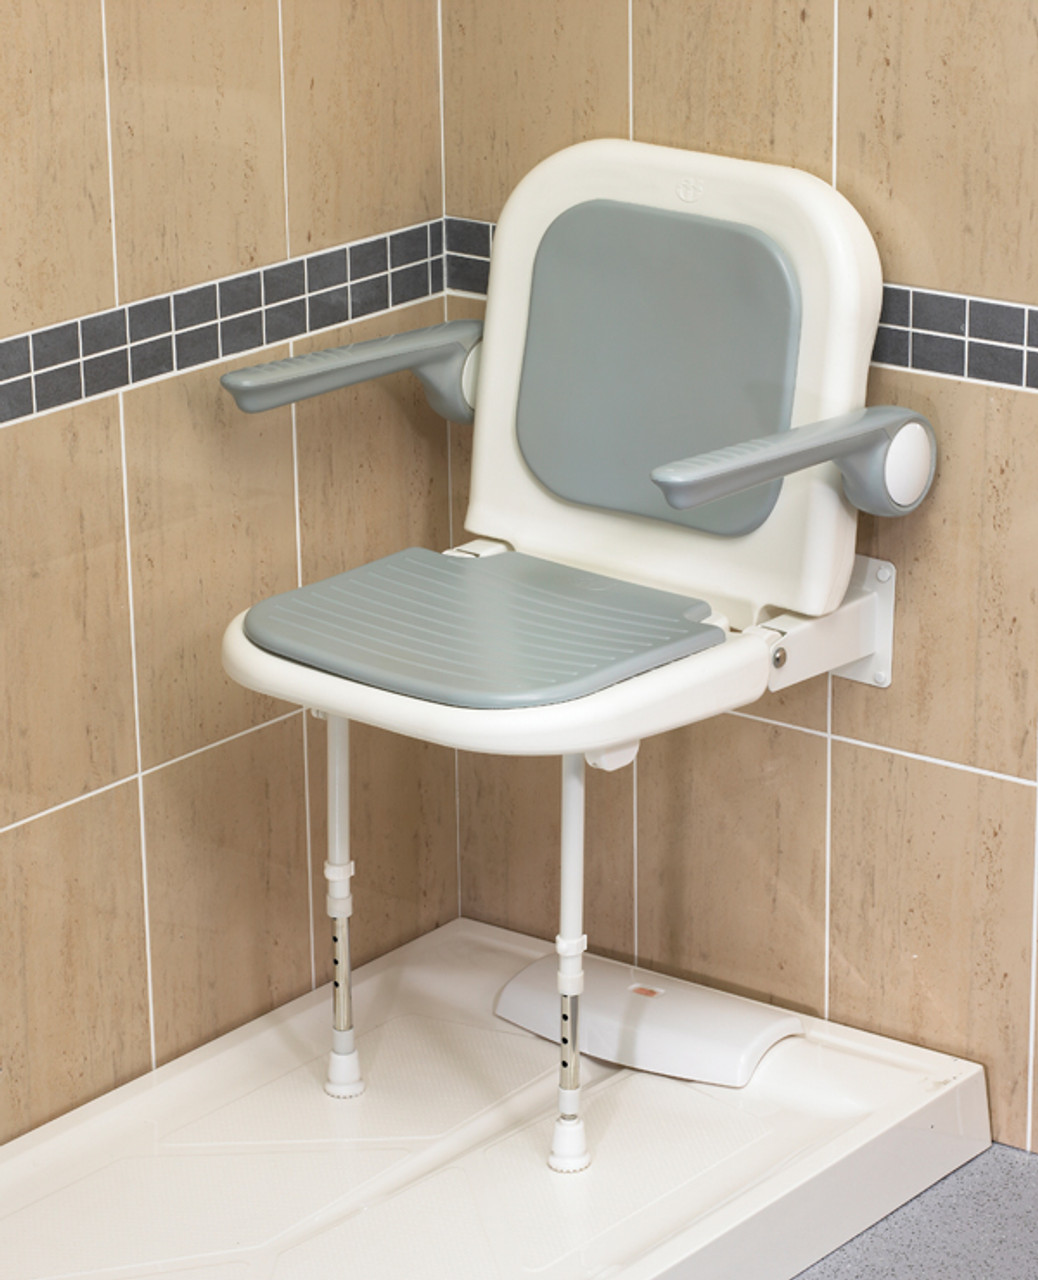 Outstanding Wall Mount Shower Seat With Arms Ocoug Best Dining Table And Chair Ideas Images Ocougorg